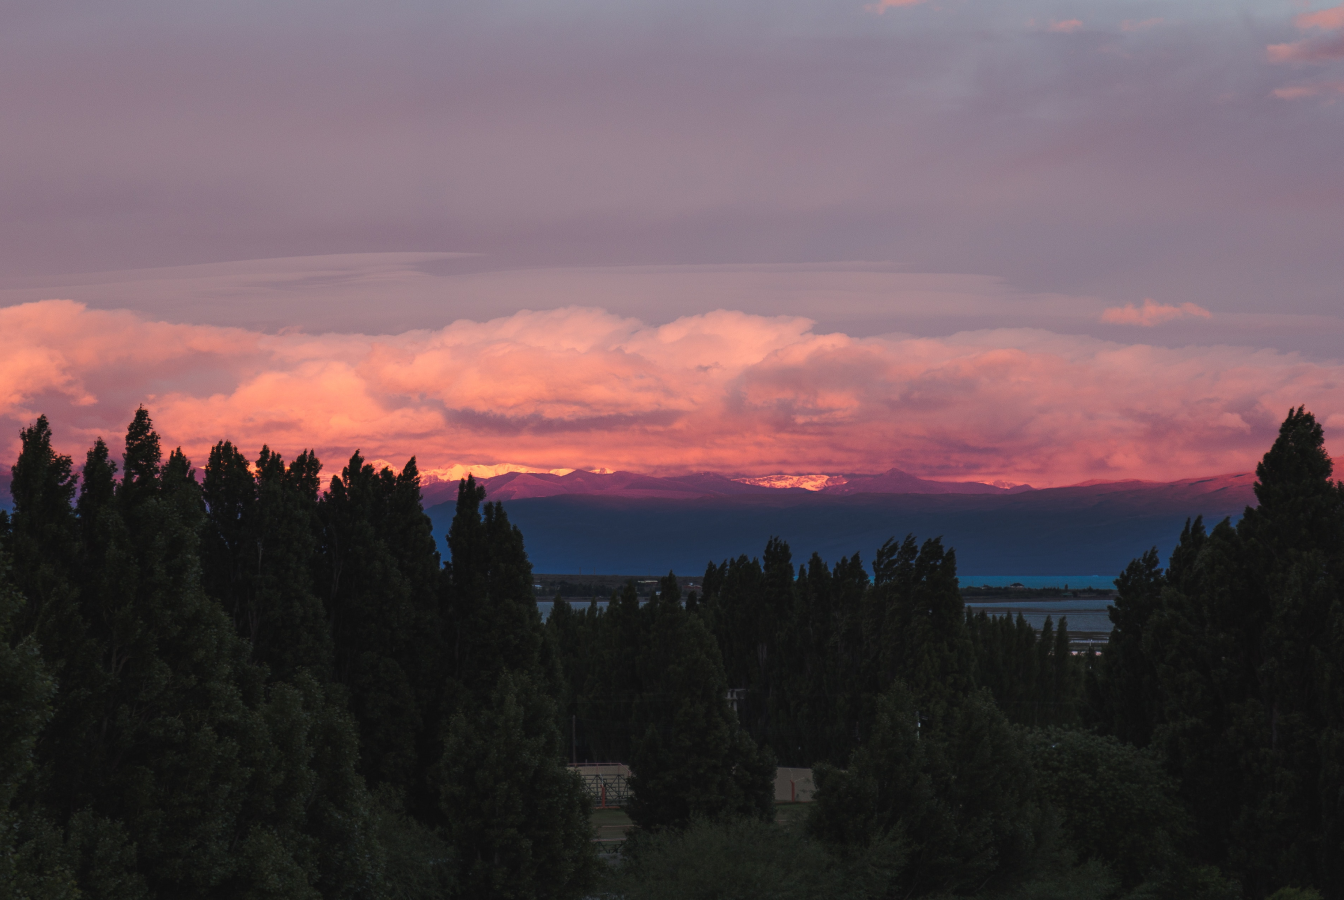 Sun setting behind snowy mountains clouds, overhead